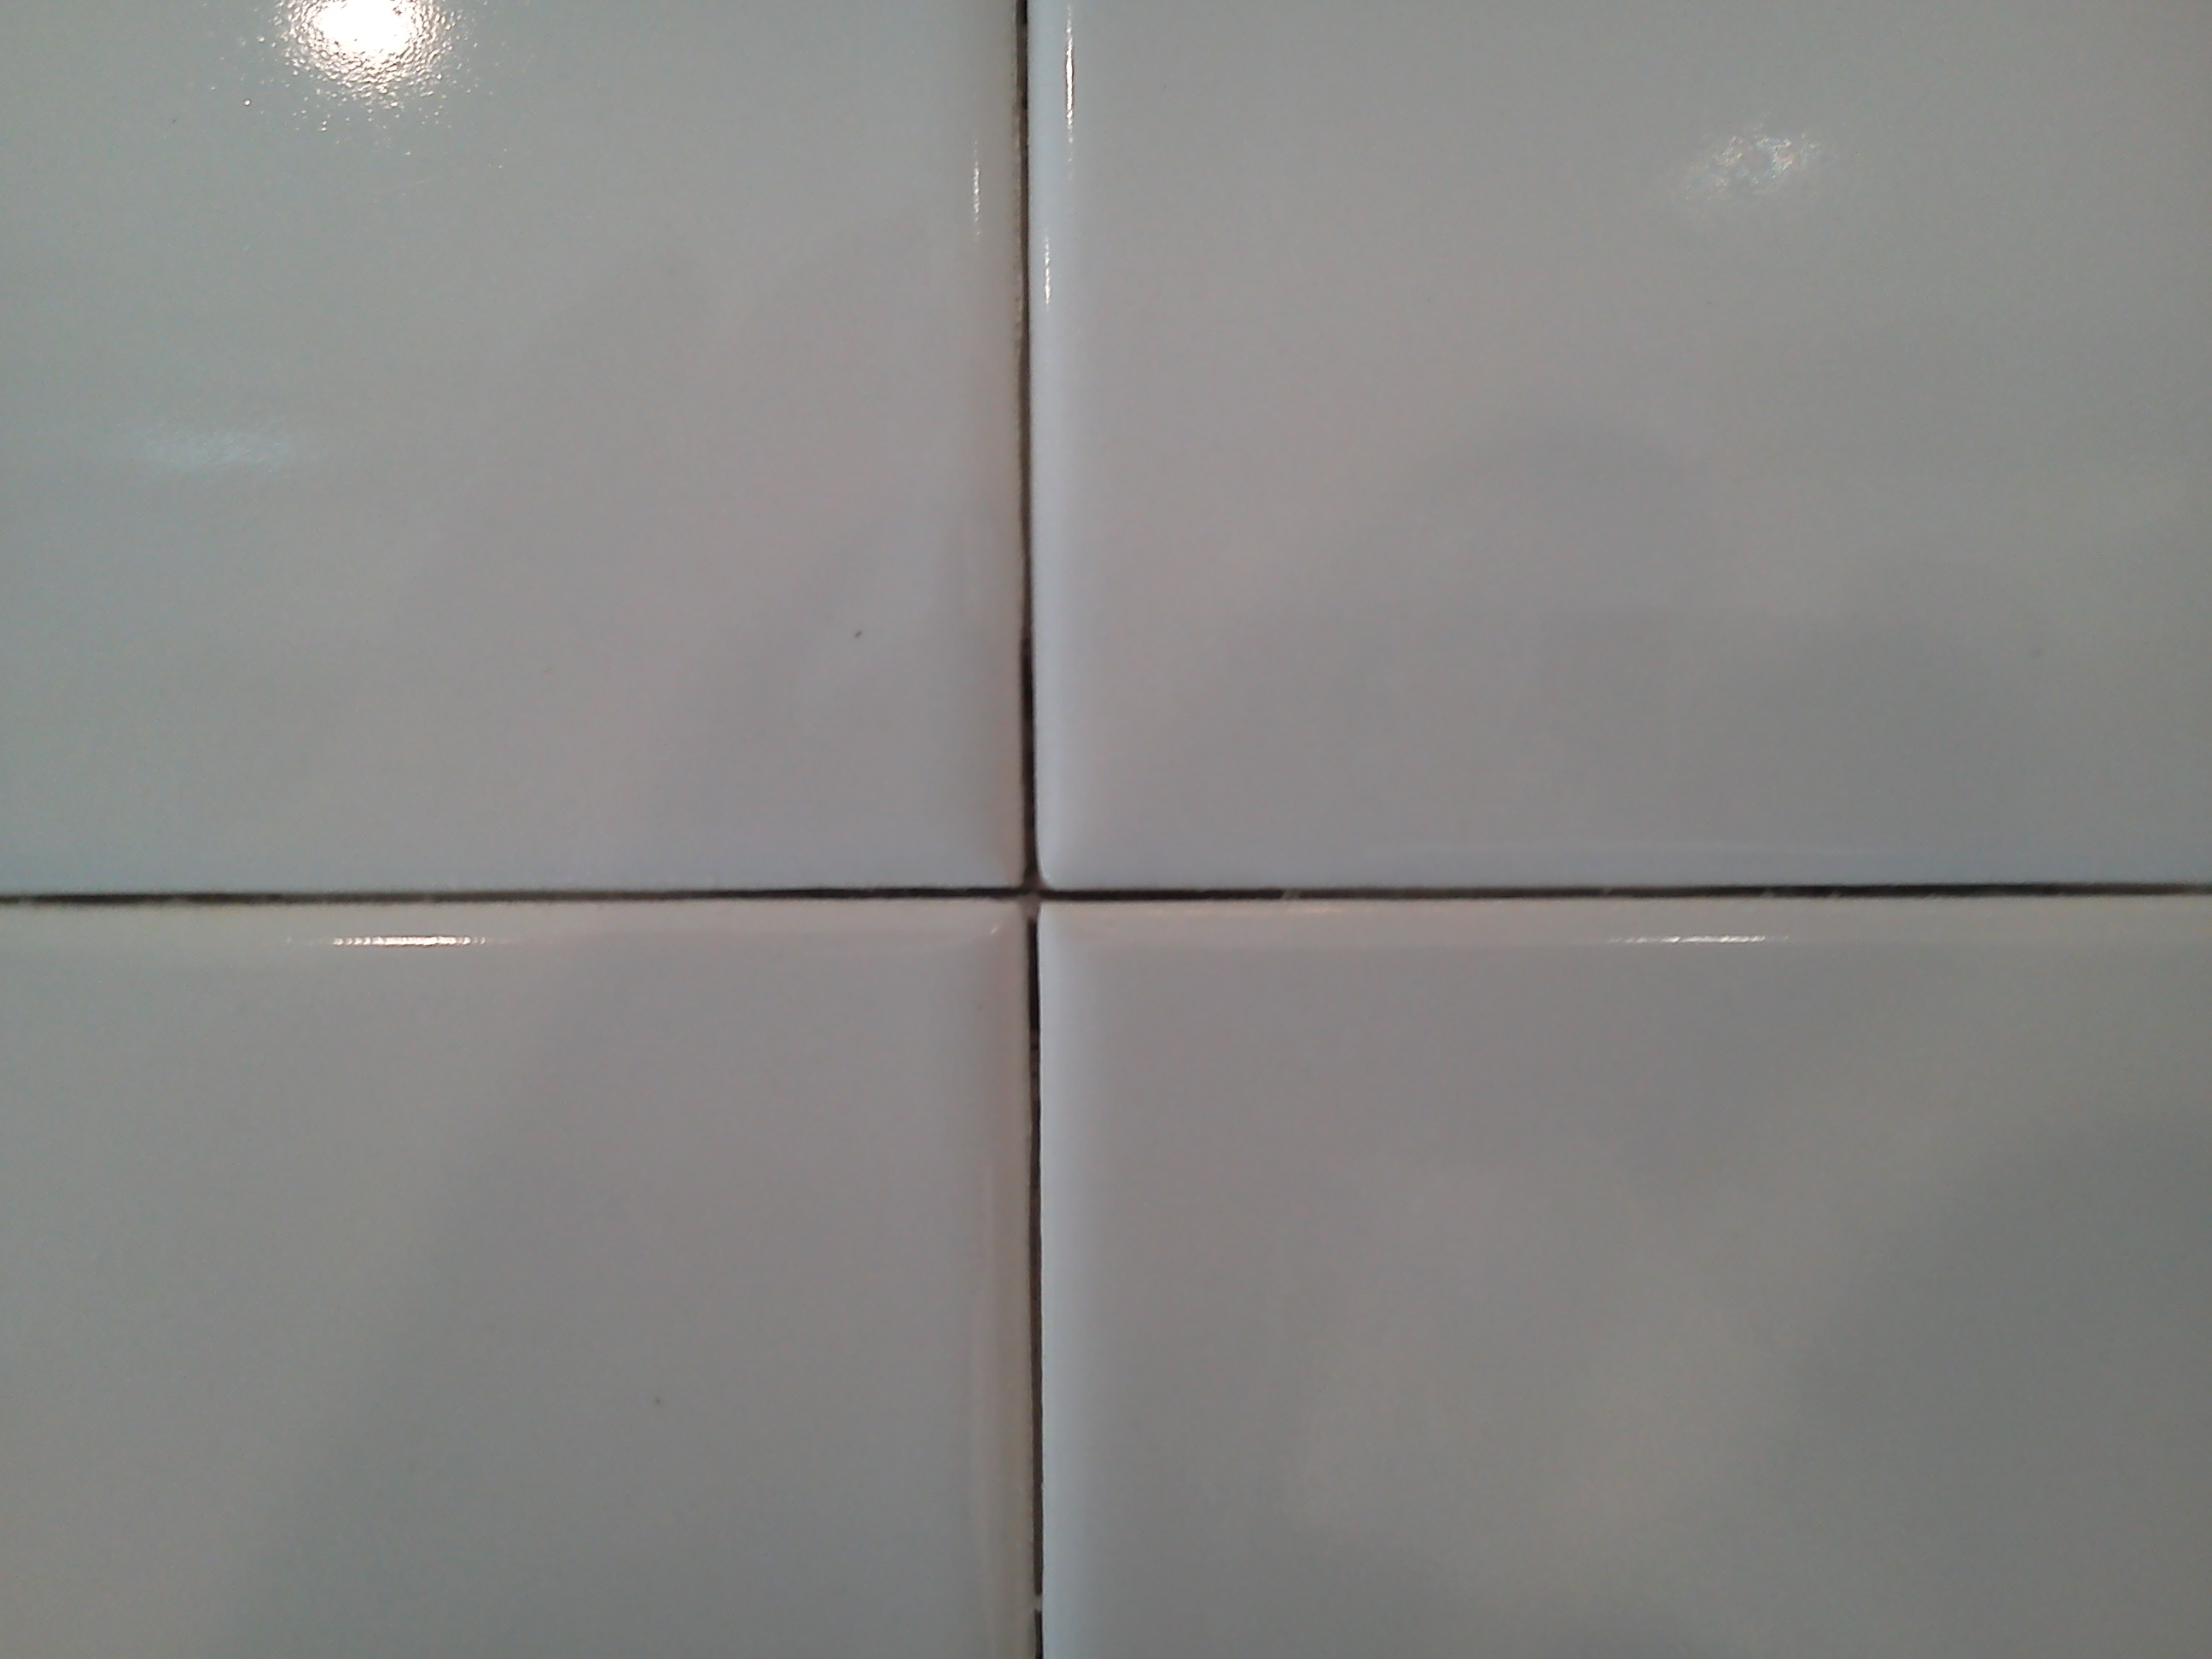 Fredericksburg tile companies archives pristine tile carpet properly removed grout dailygadgetfo Choice Image